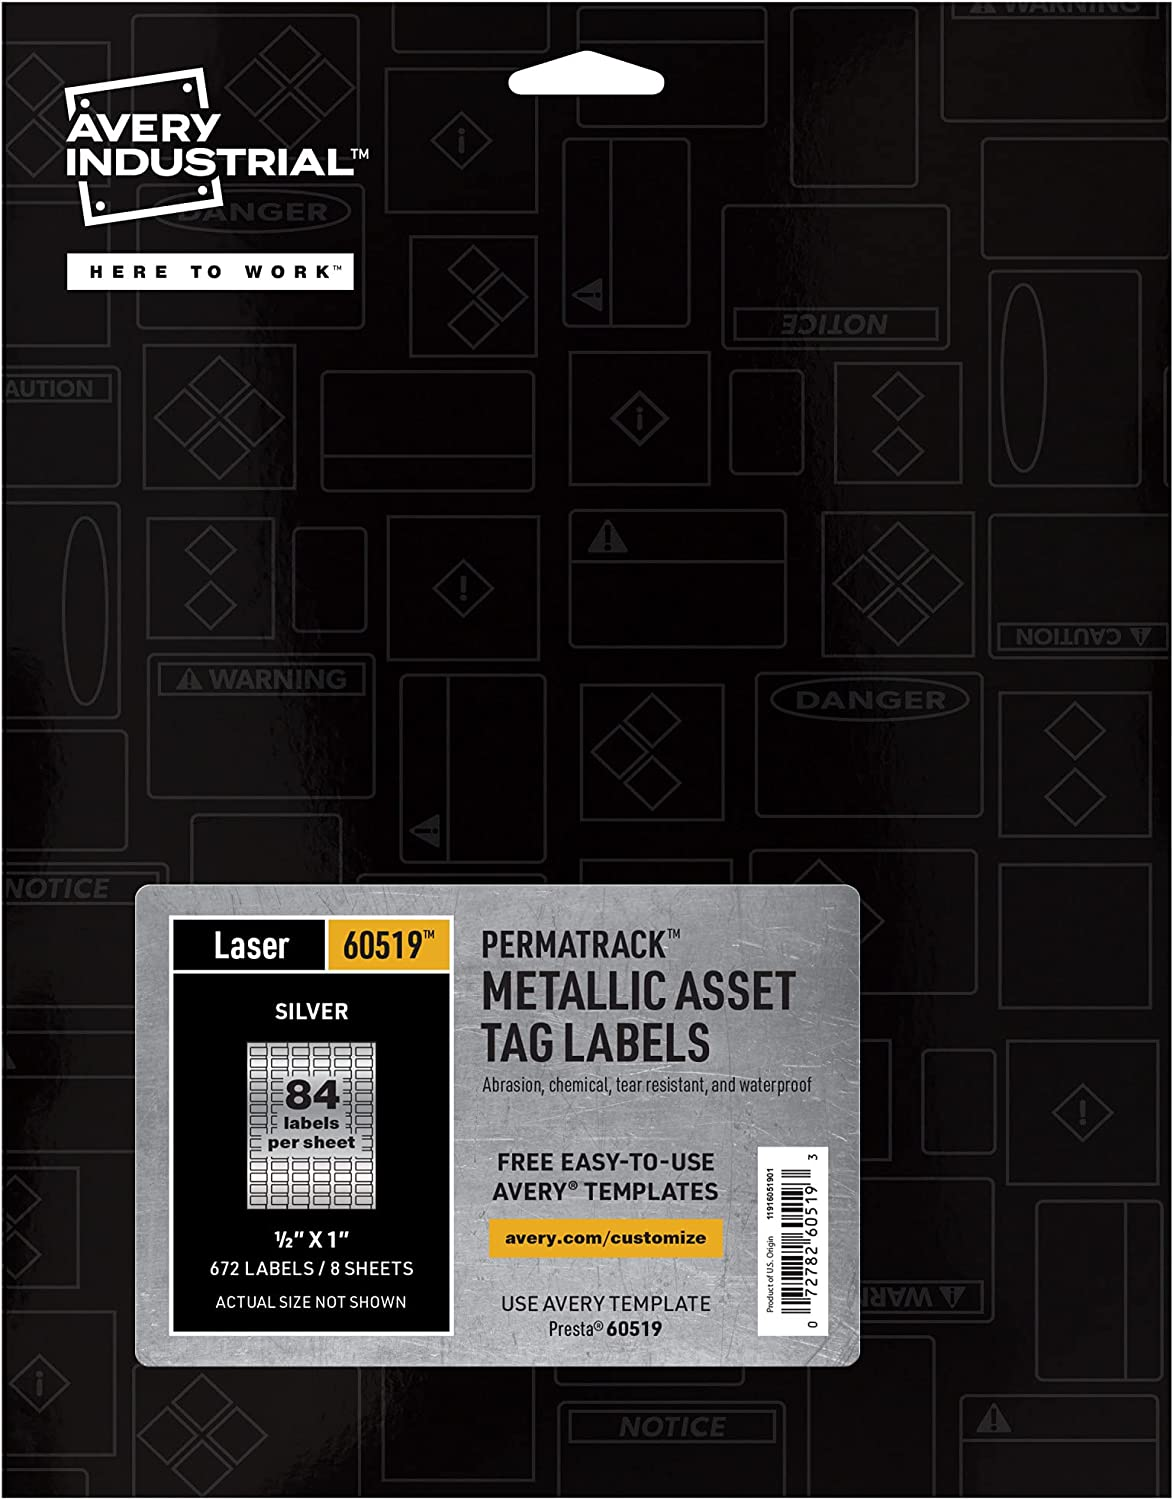 Avery PermaTrack Metallic Asset Tag Labels for Laser Printers, 1/2